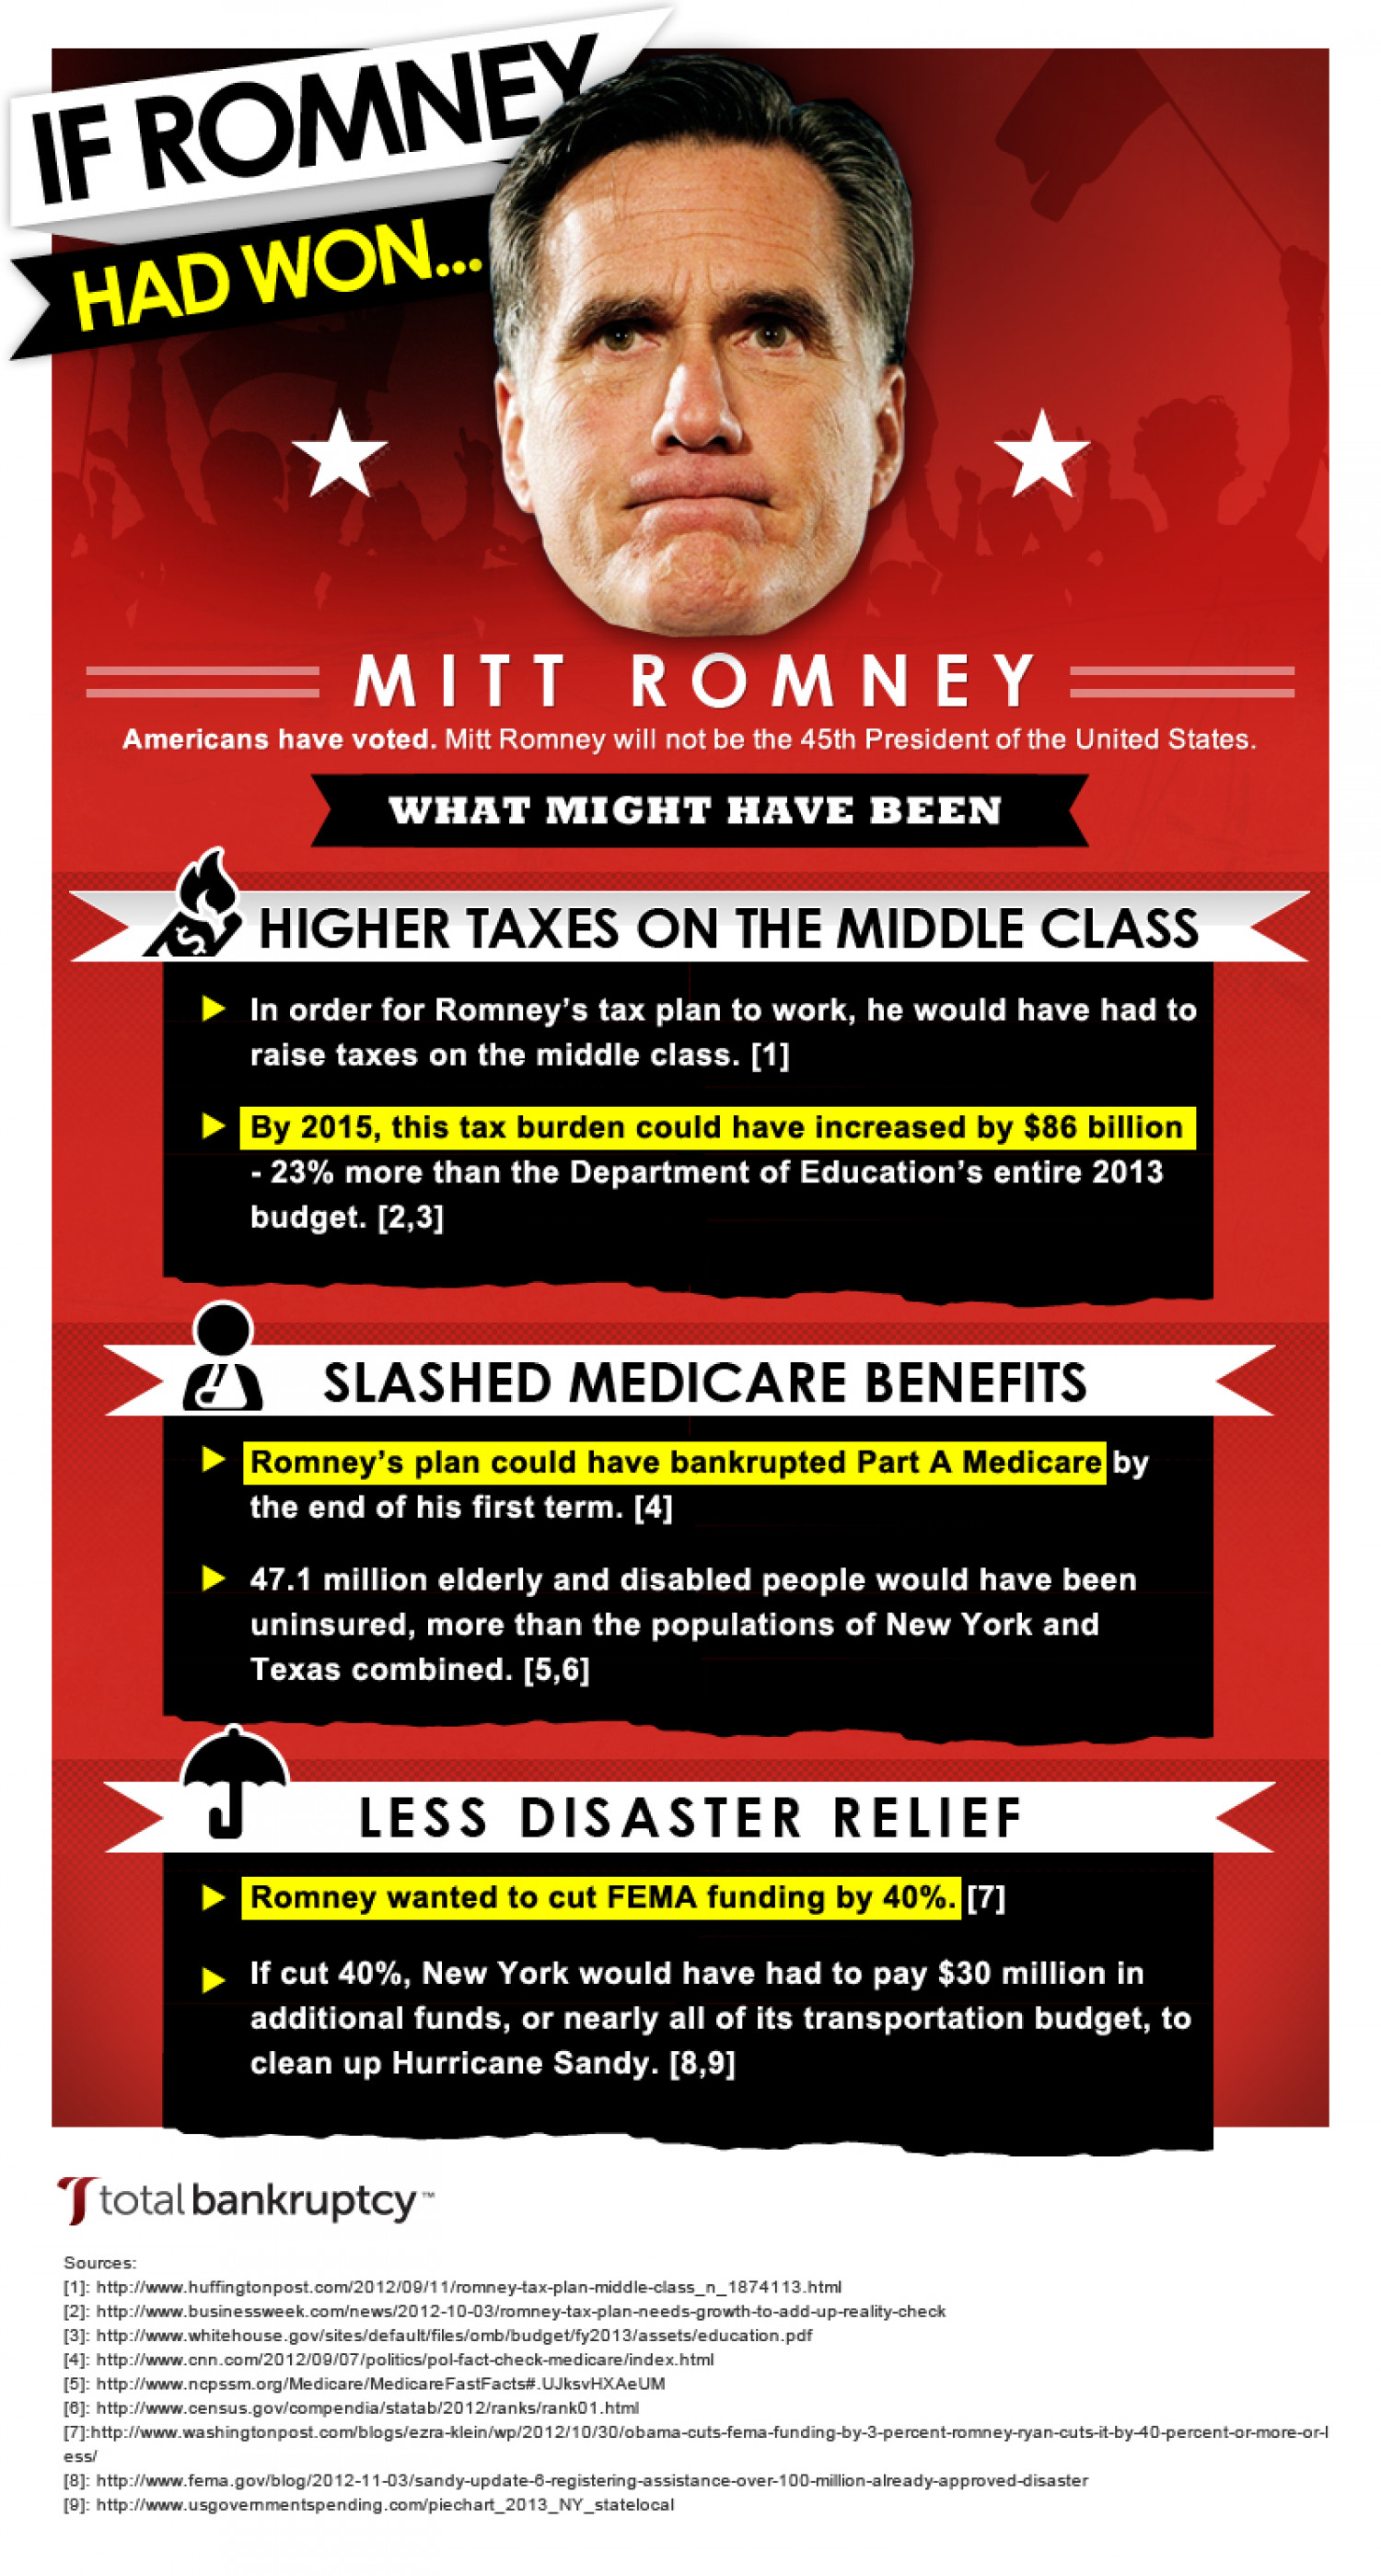 What If Mitt Romney Won The Presidency? Infographic